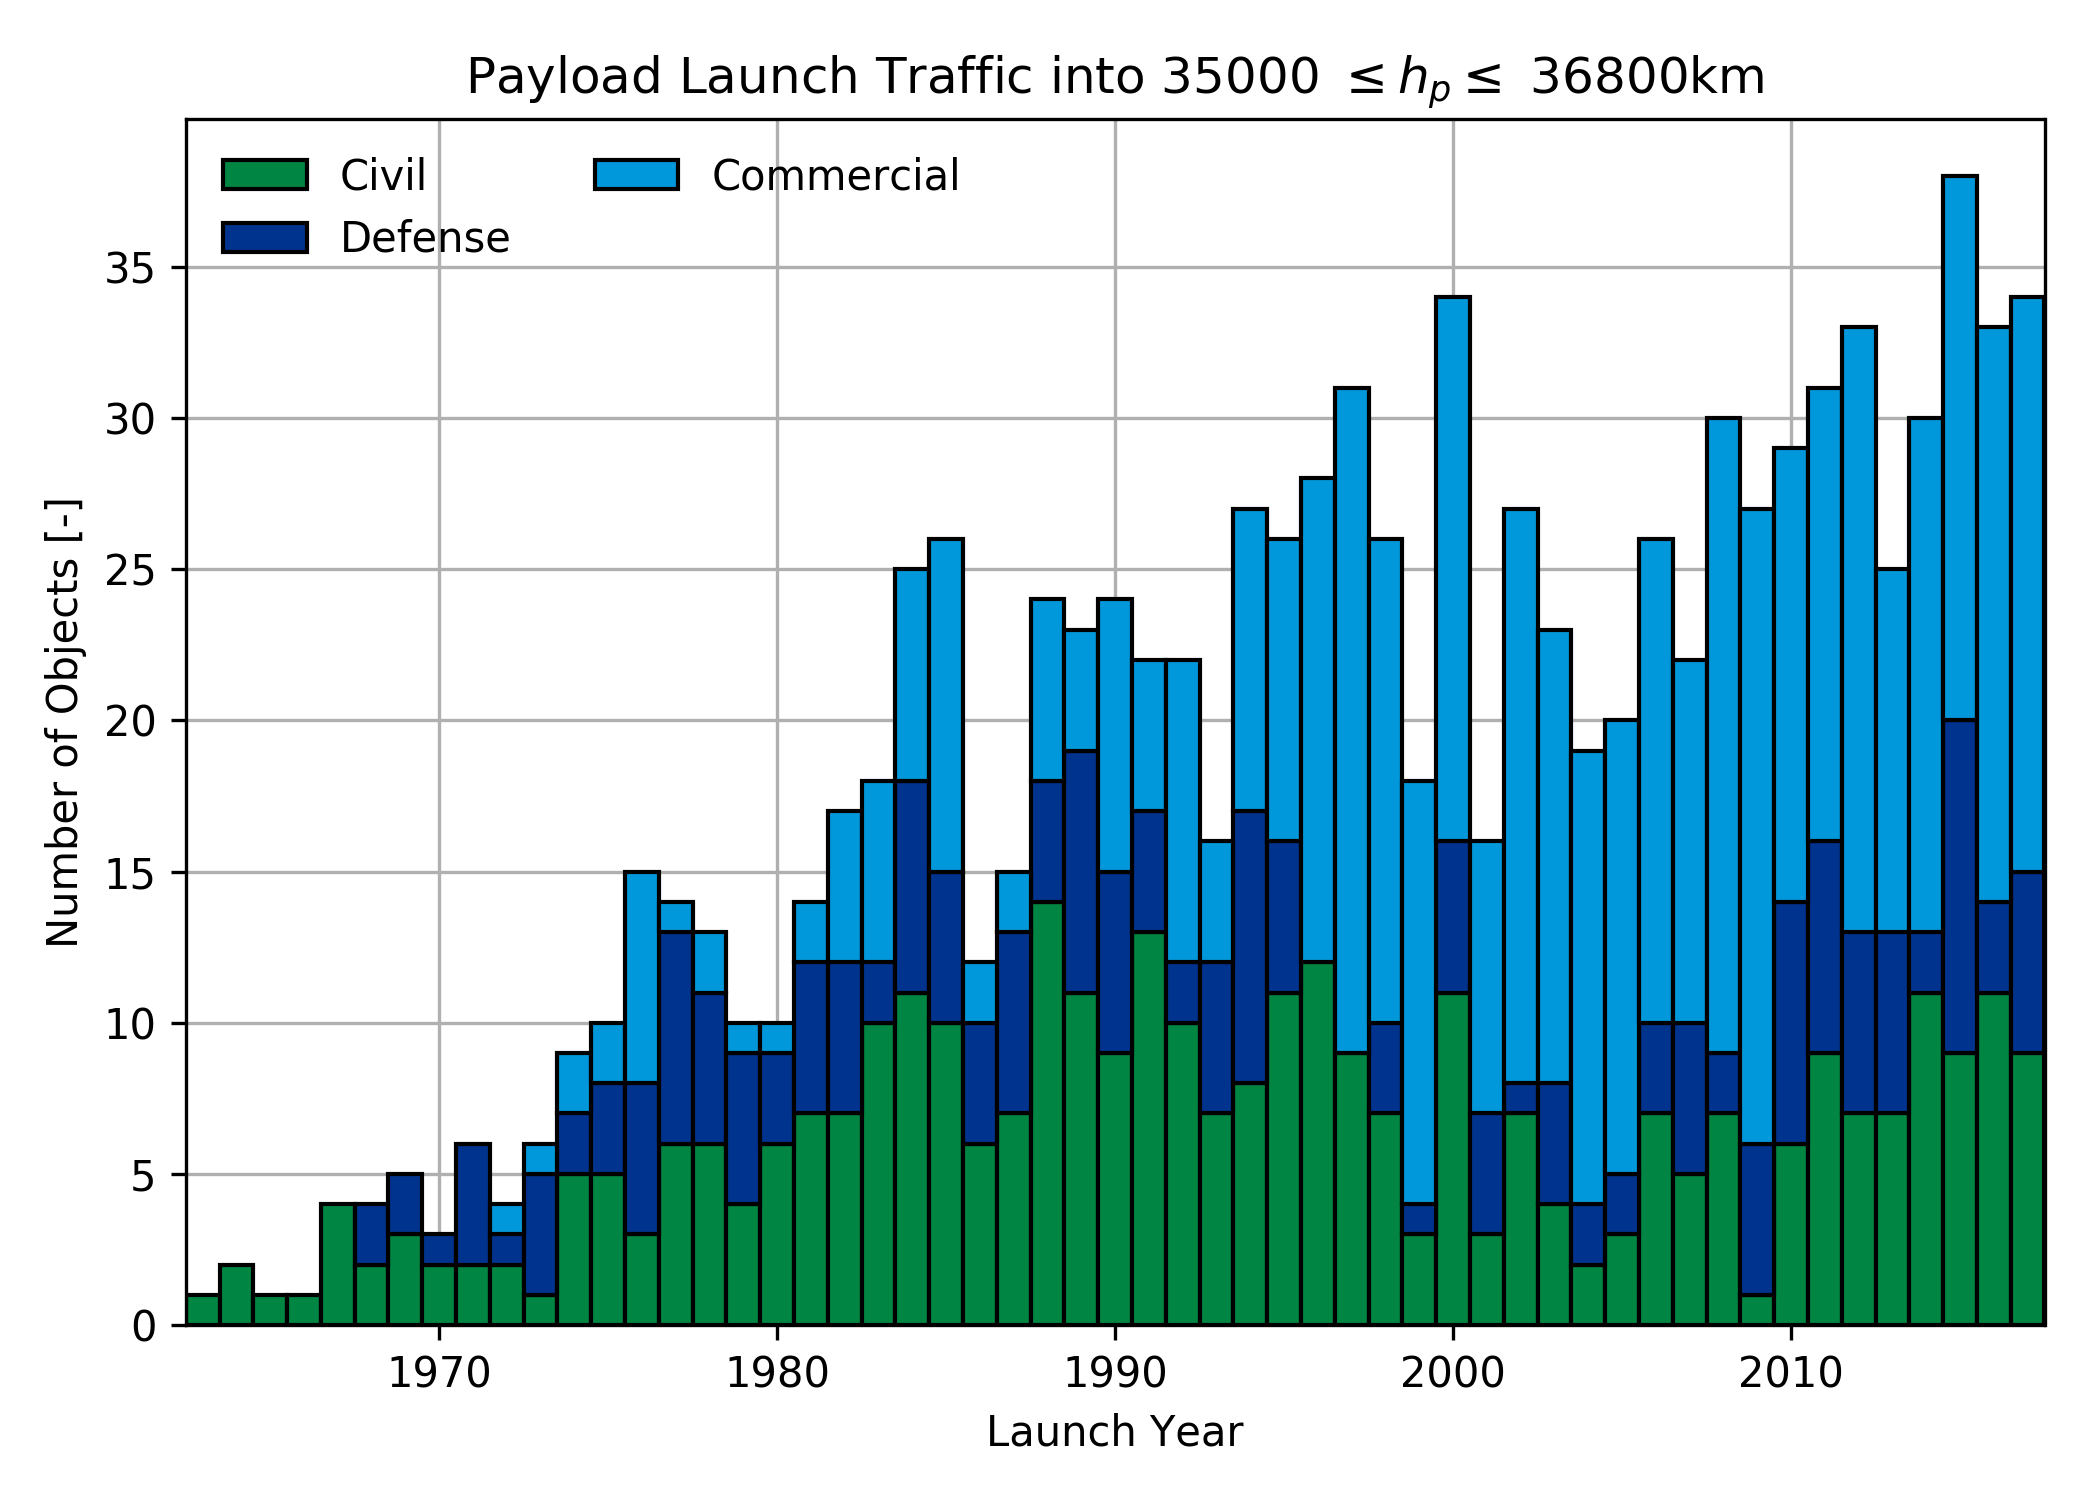 Launch traffic to GEO over time